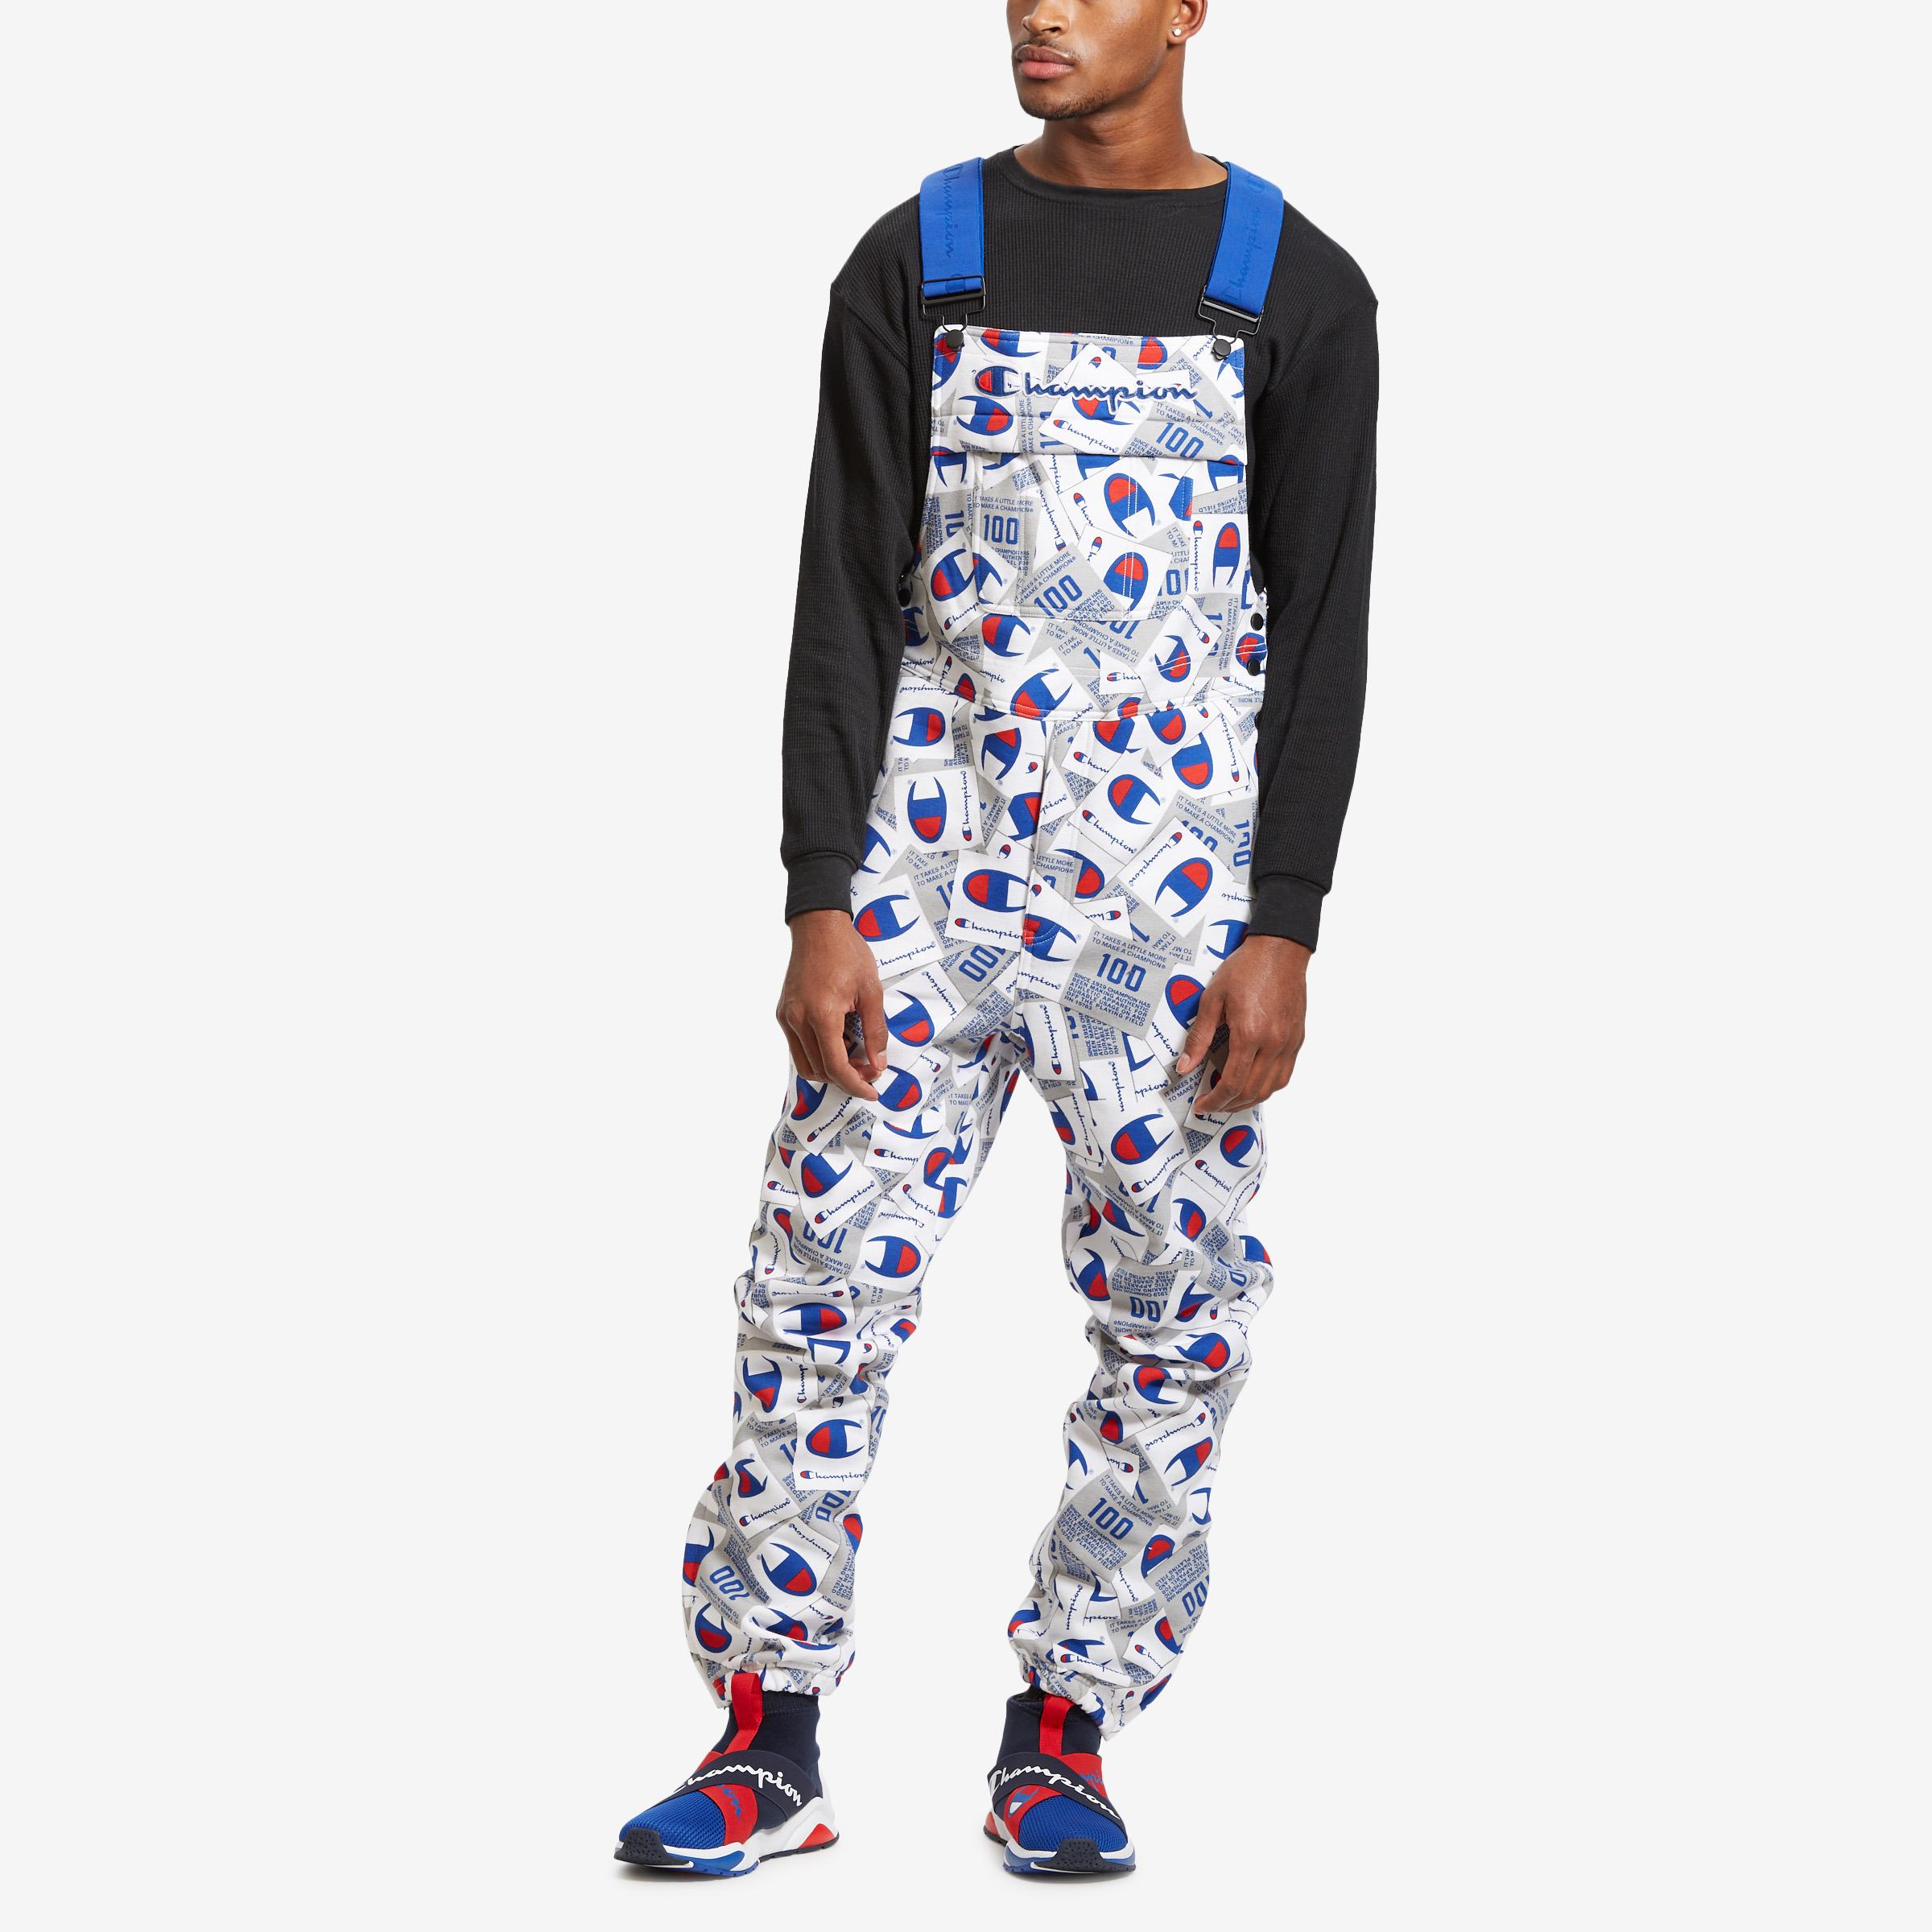 Super Fleece Overalls